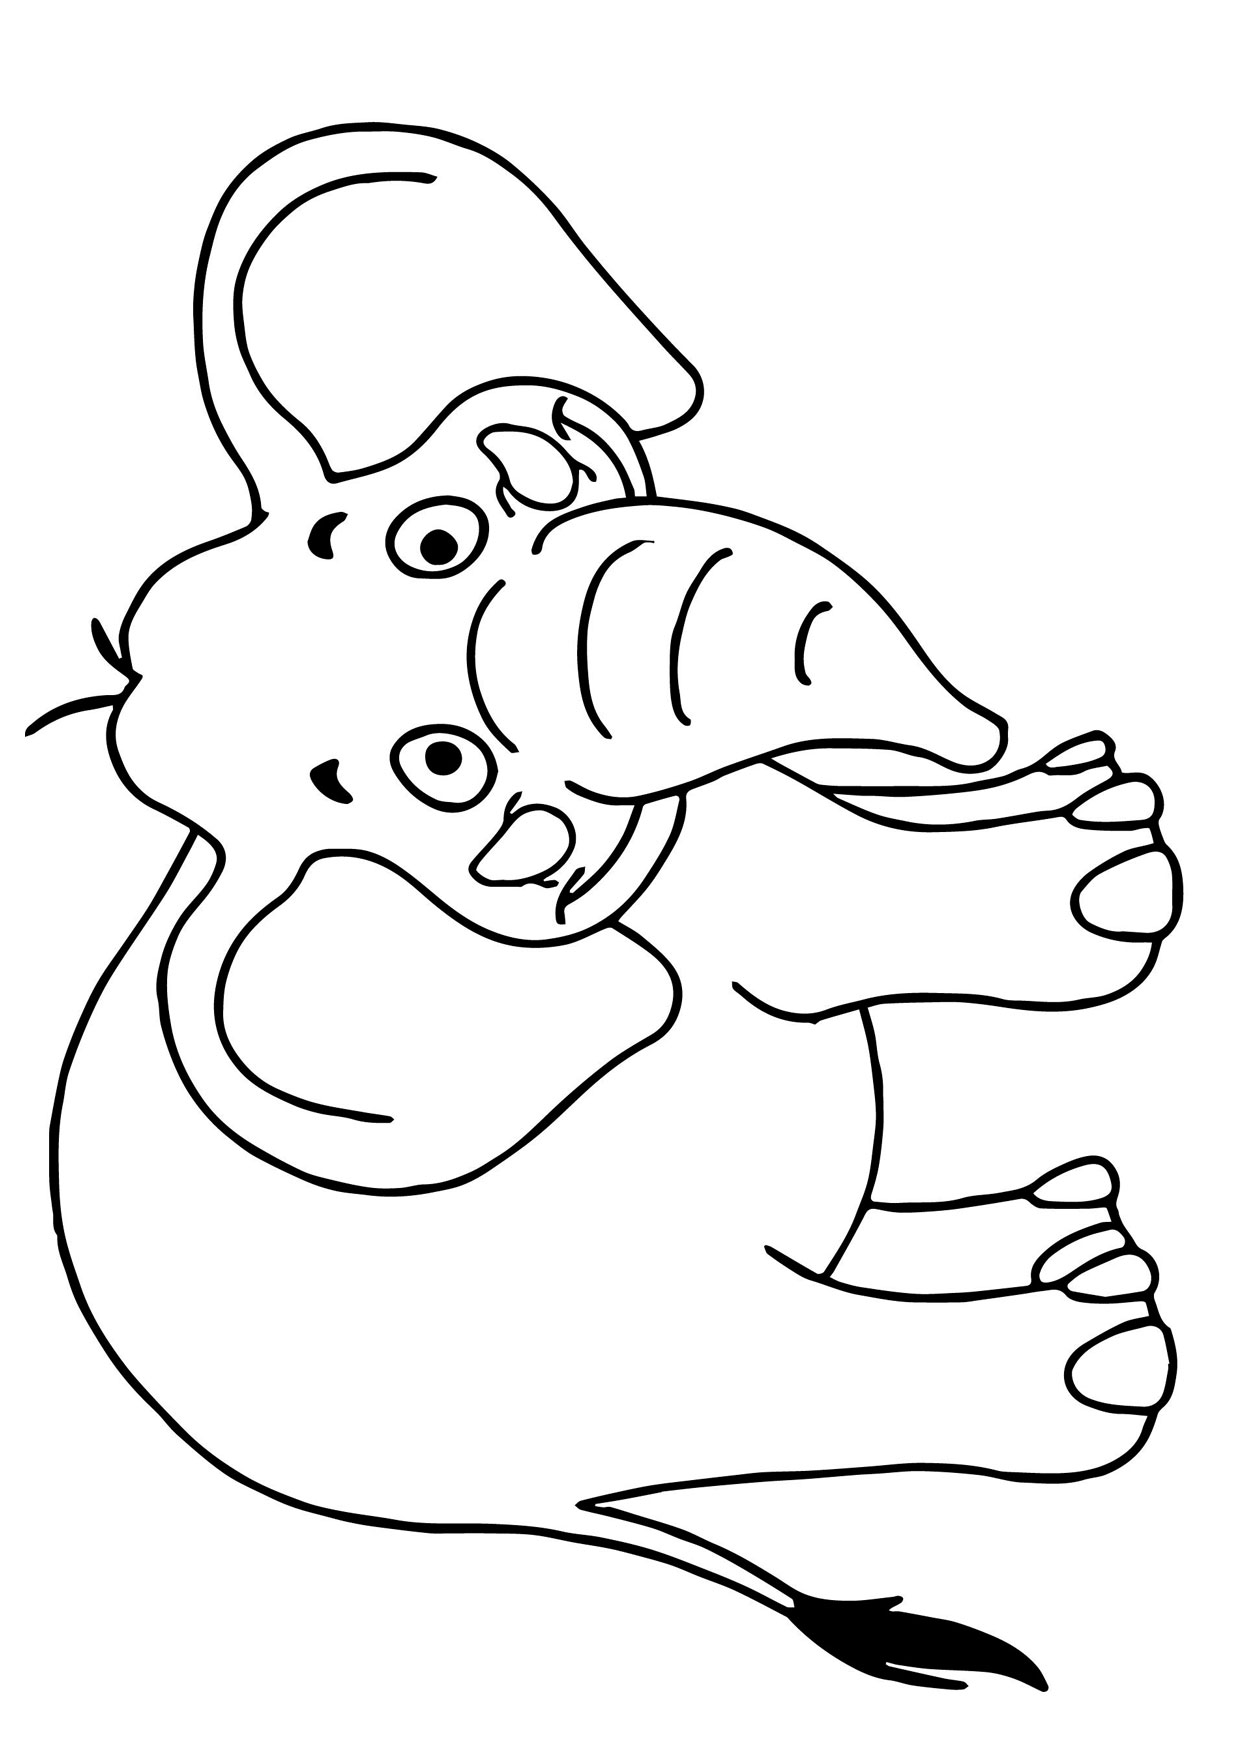 Disegno di Elefante Cartoon da colorare 10